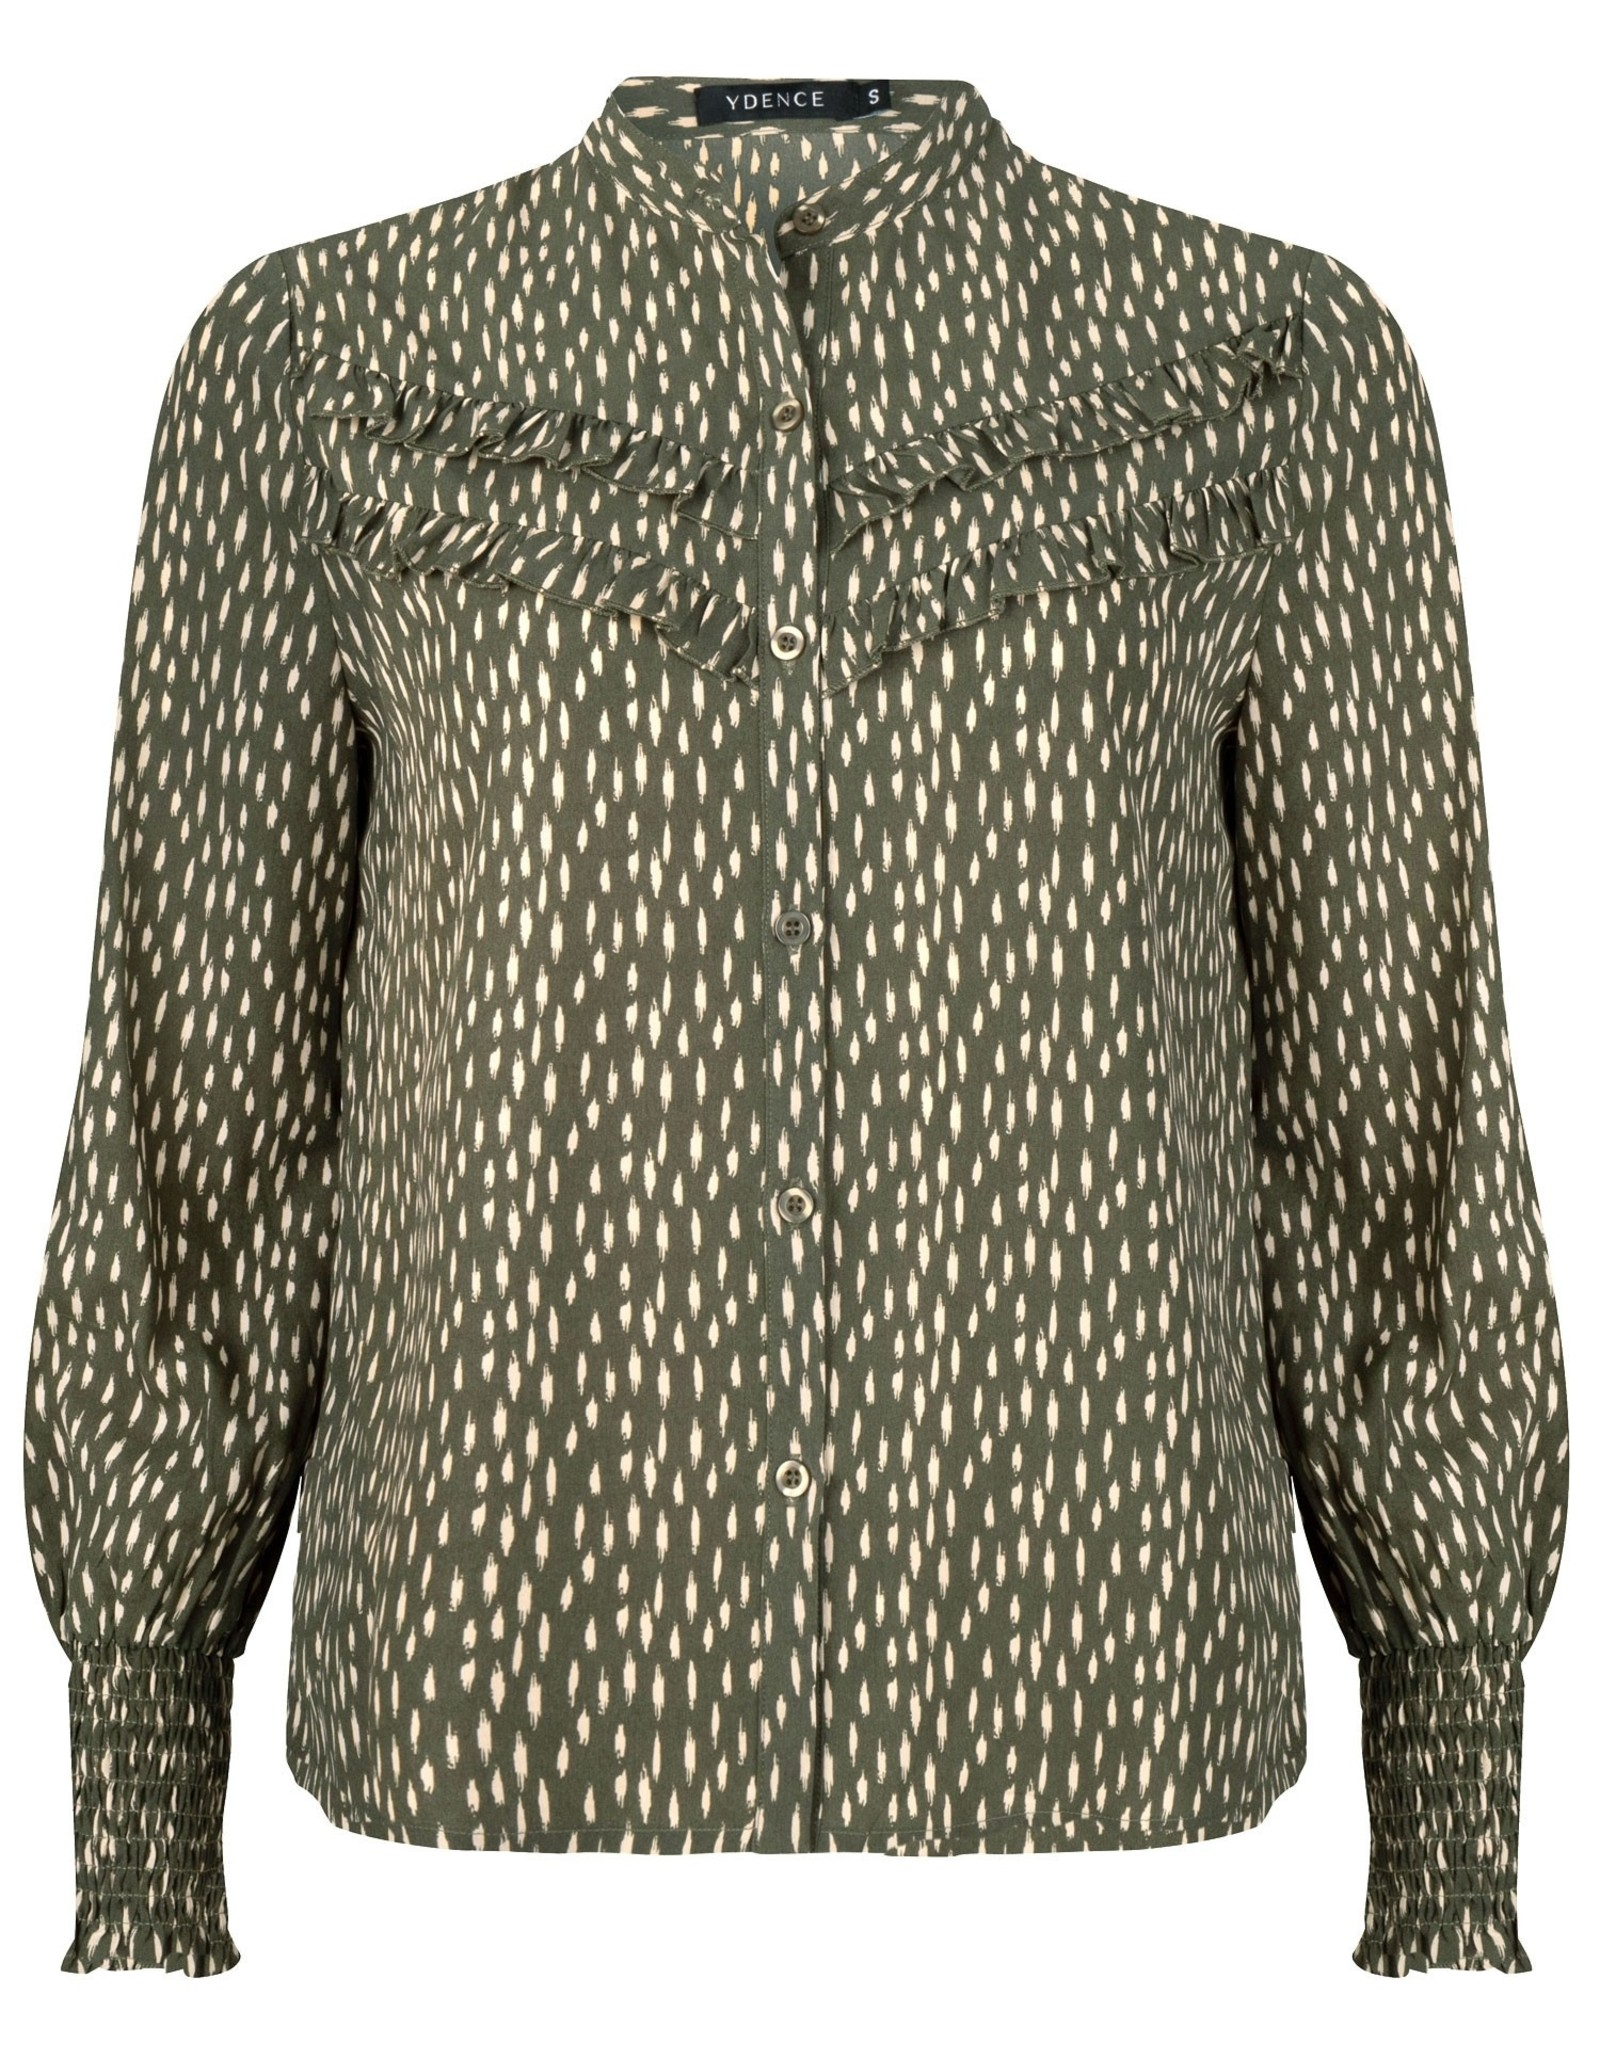 Ydence Blouse indy green print